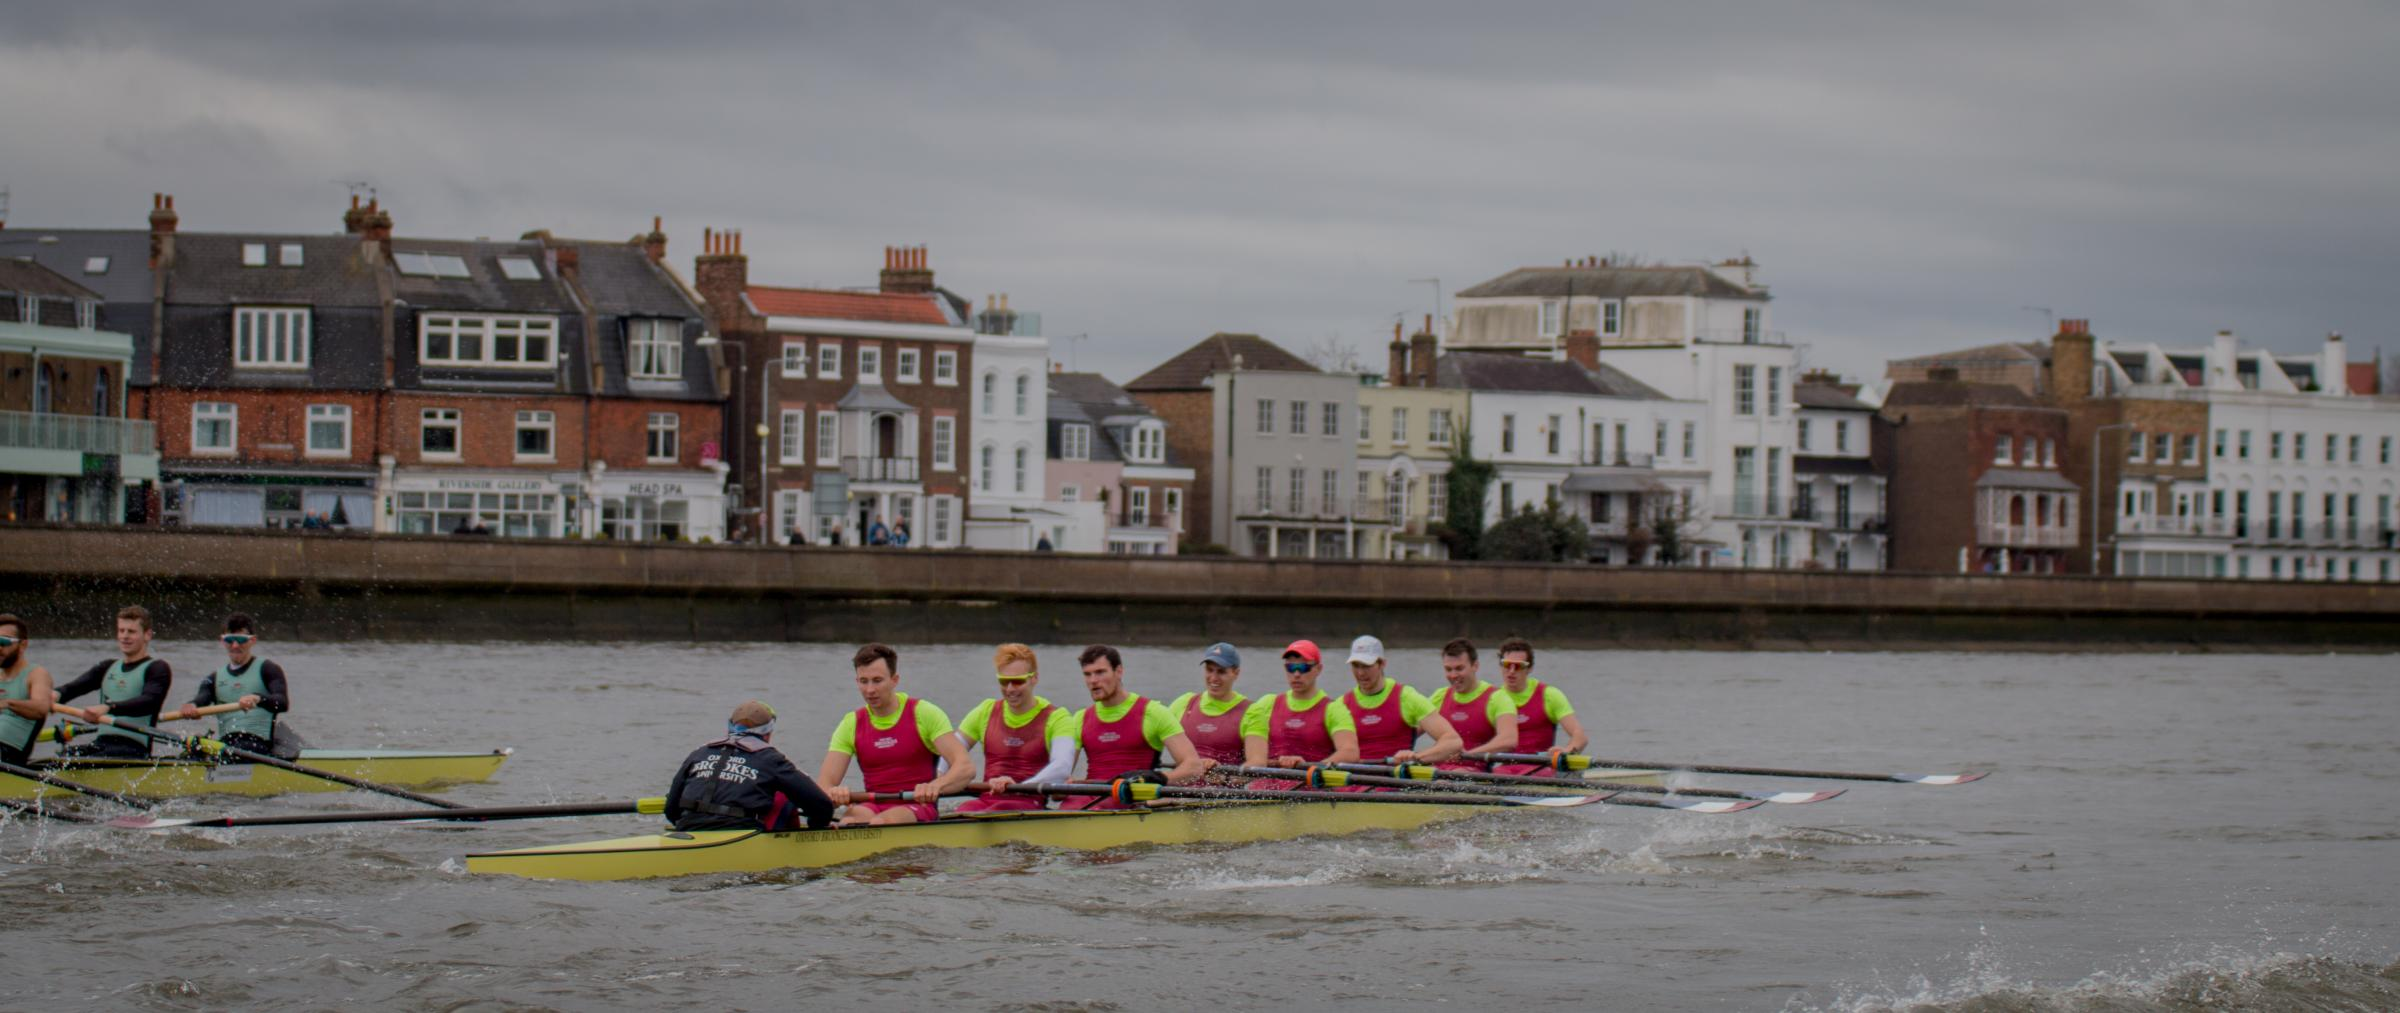 The Oxford Brookes first eight take control against Cambridge University. From left: Harry Brightmore (cox), Morgan Bolding,  Henry Swarbrick, Matt Aldridge, Rory Gibbs, Gareth Syphas, Sam Nunn, Matt Hnatiw, Quentin Antognelli Picture: Lewis Todd (Brookes